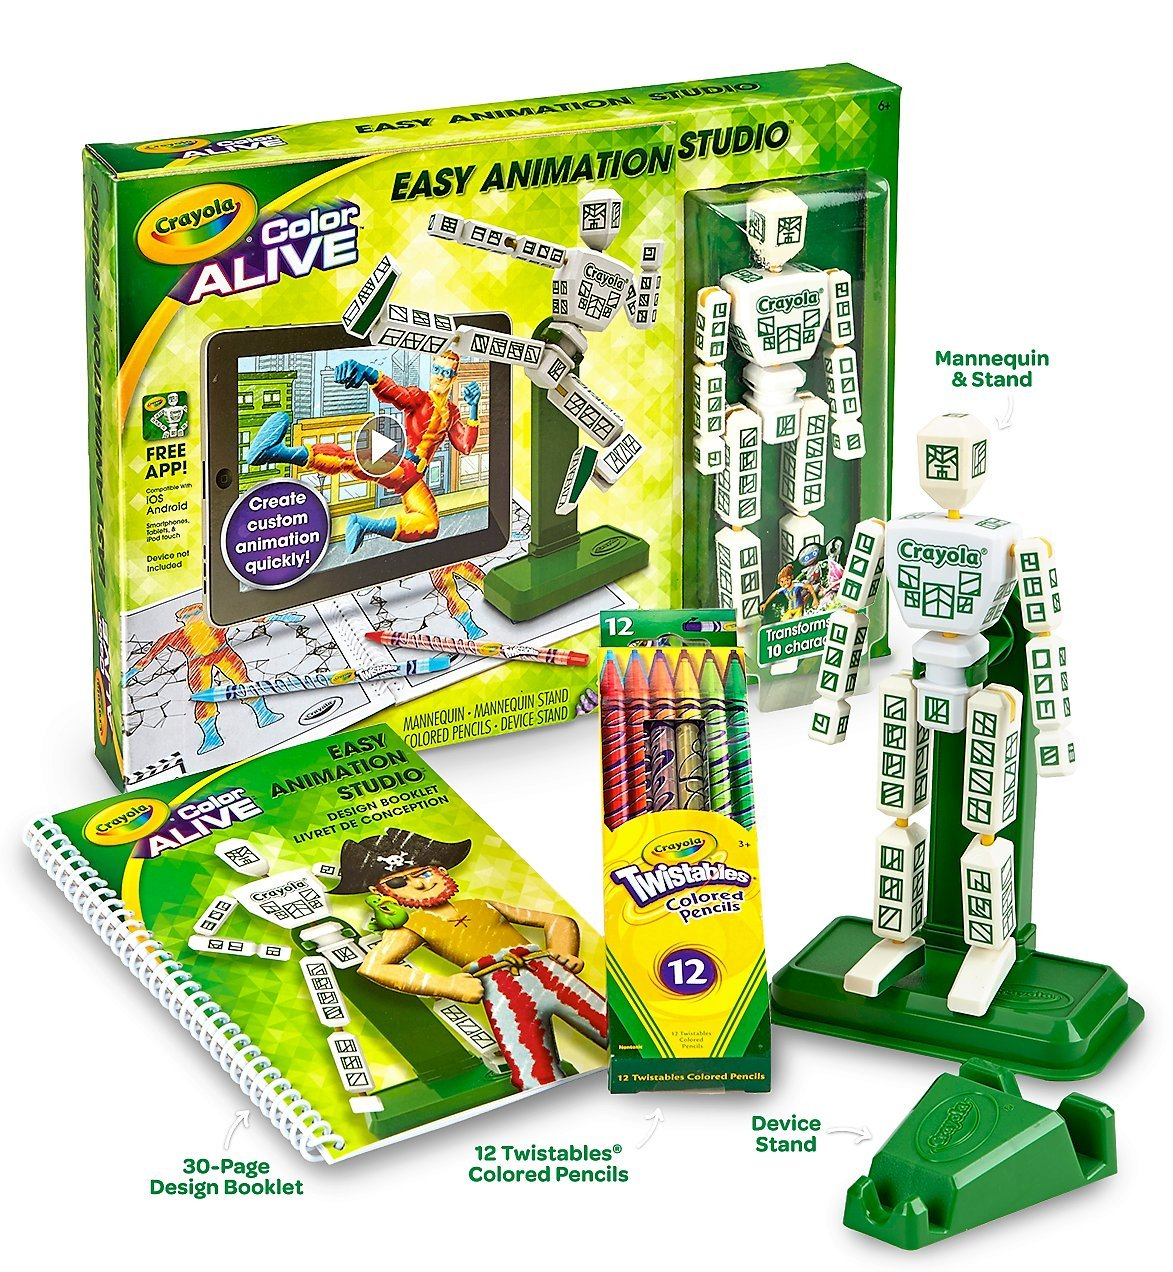 Amazon.com : Crayola Color Alive Easy Animation Studio Model: 95 ...